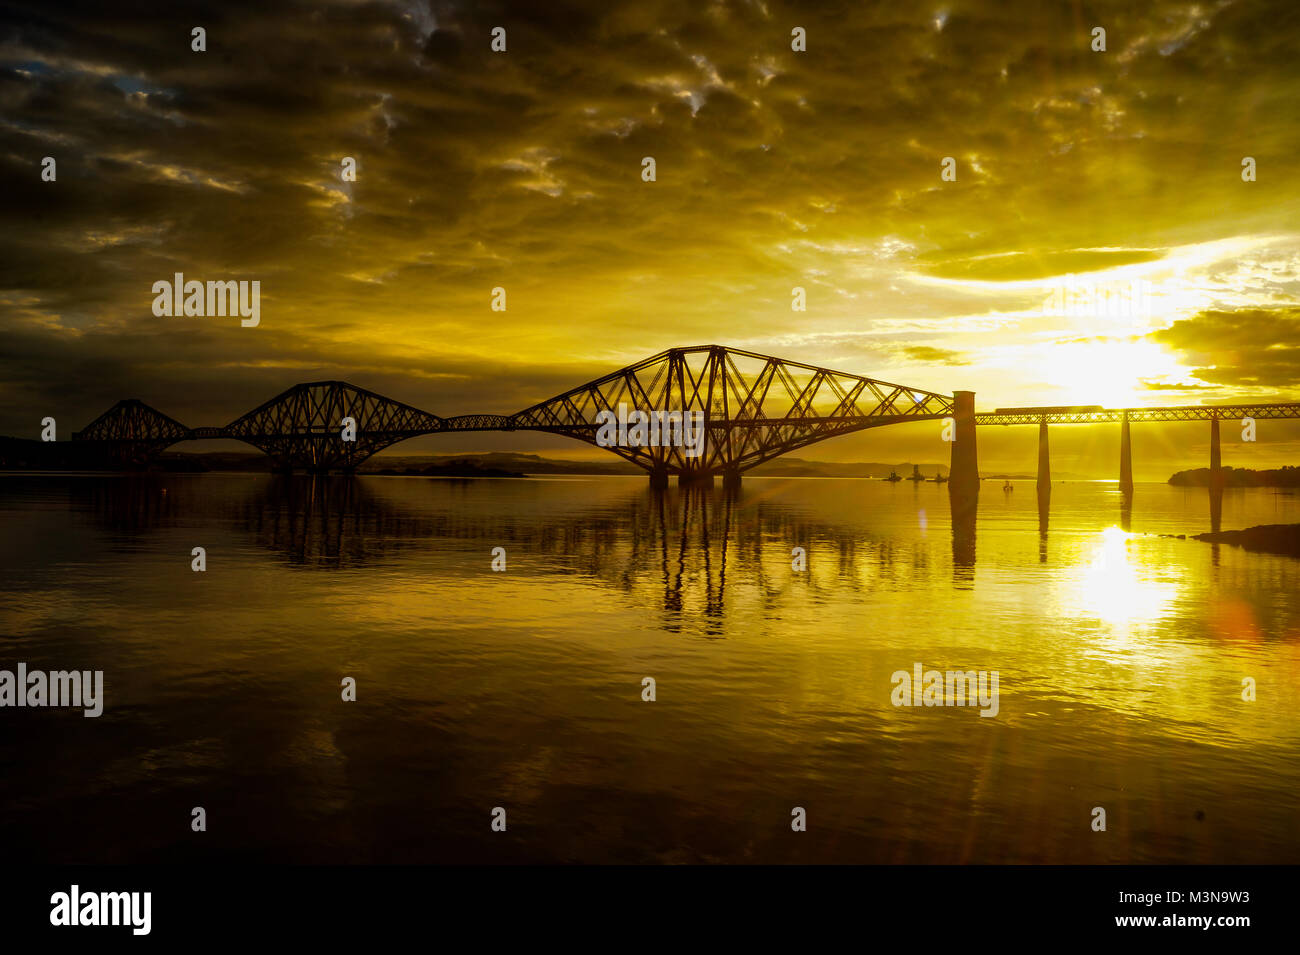 Forth Rail Bridge during golden hours. - Stock Image